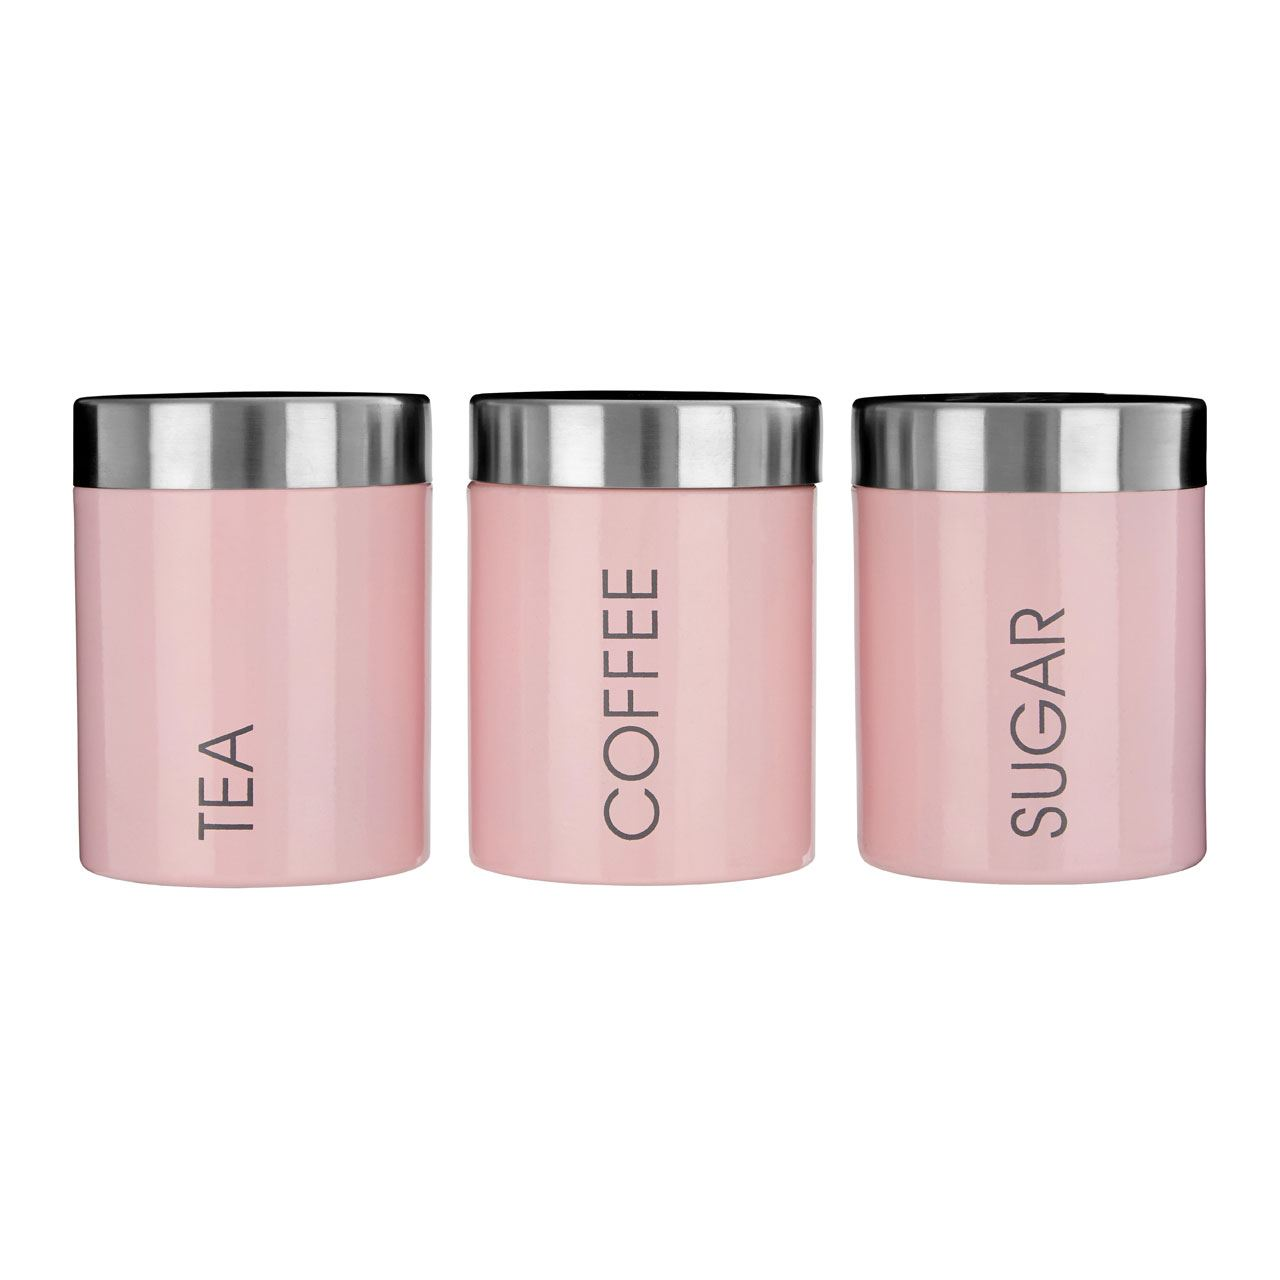 Tea coffee sugar liberty kitchen canisters light pink enamel finish jar ebay - Pink tea and coffee canisters ...